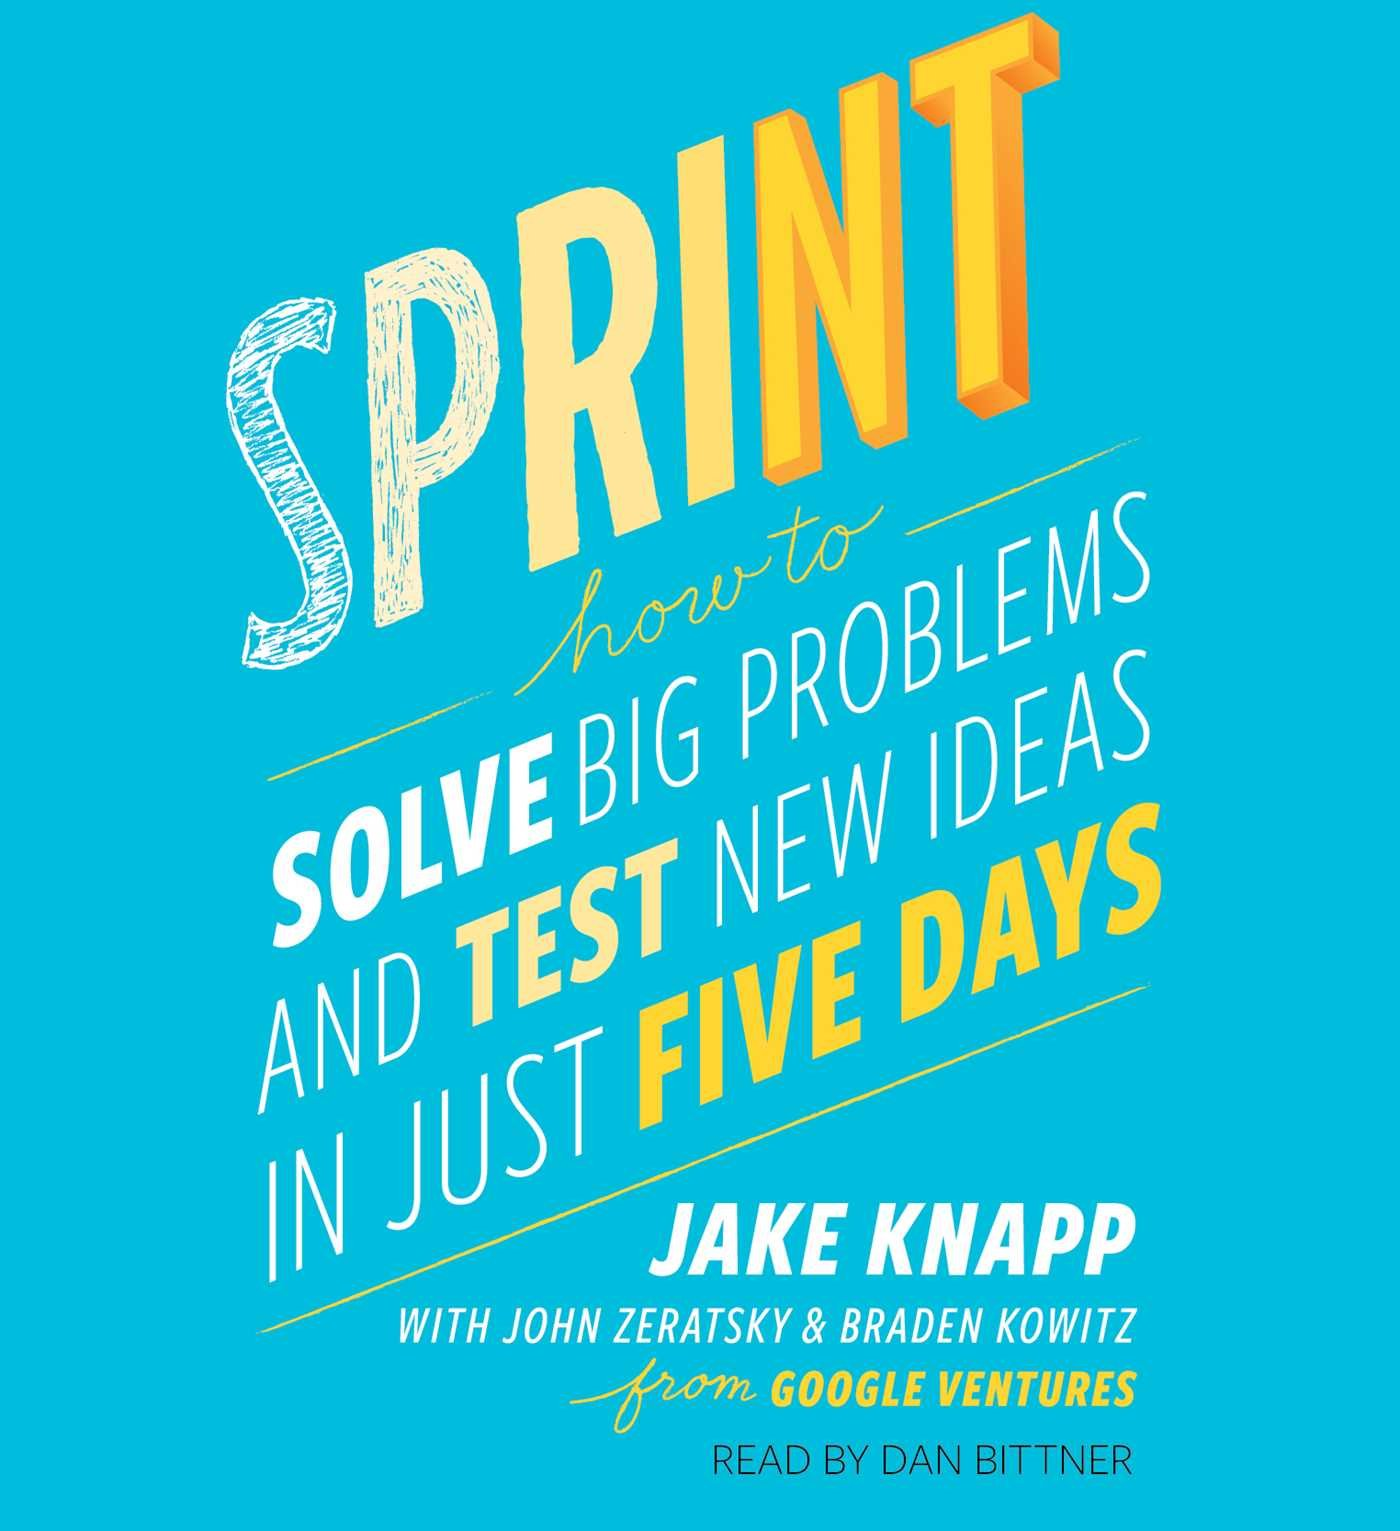 Sprint book cover